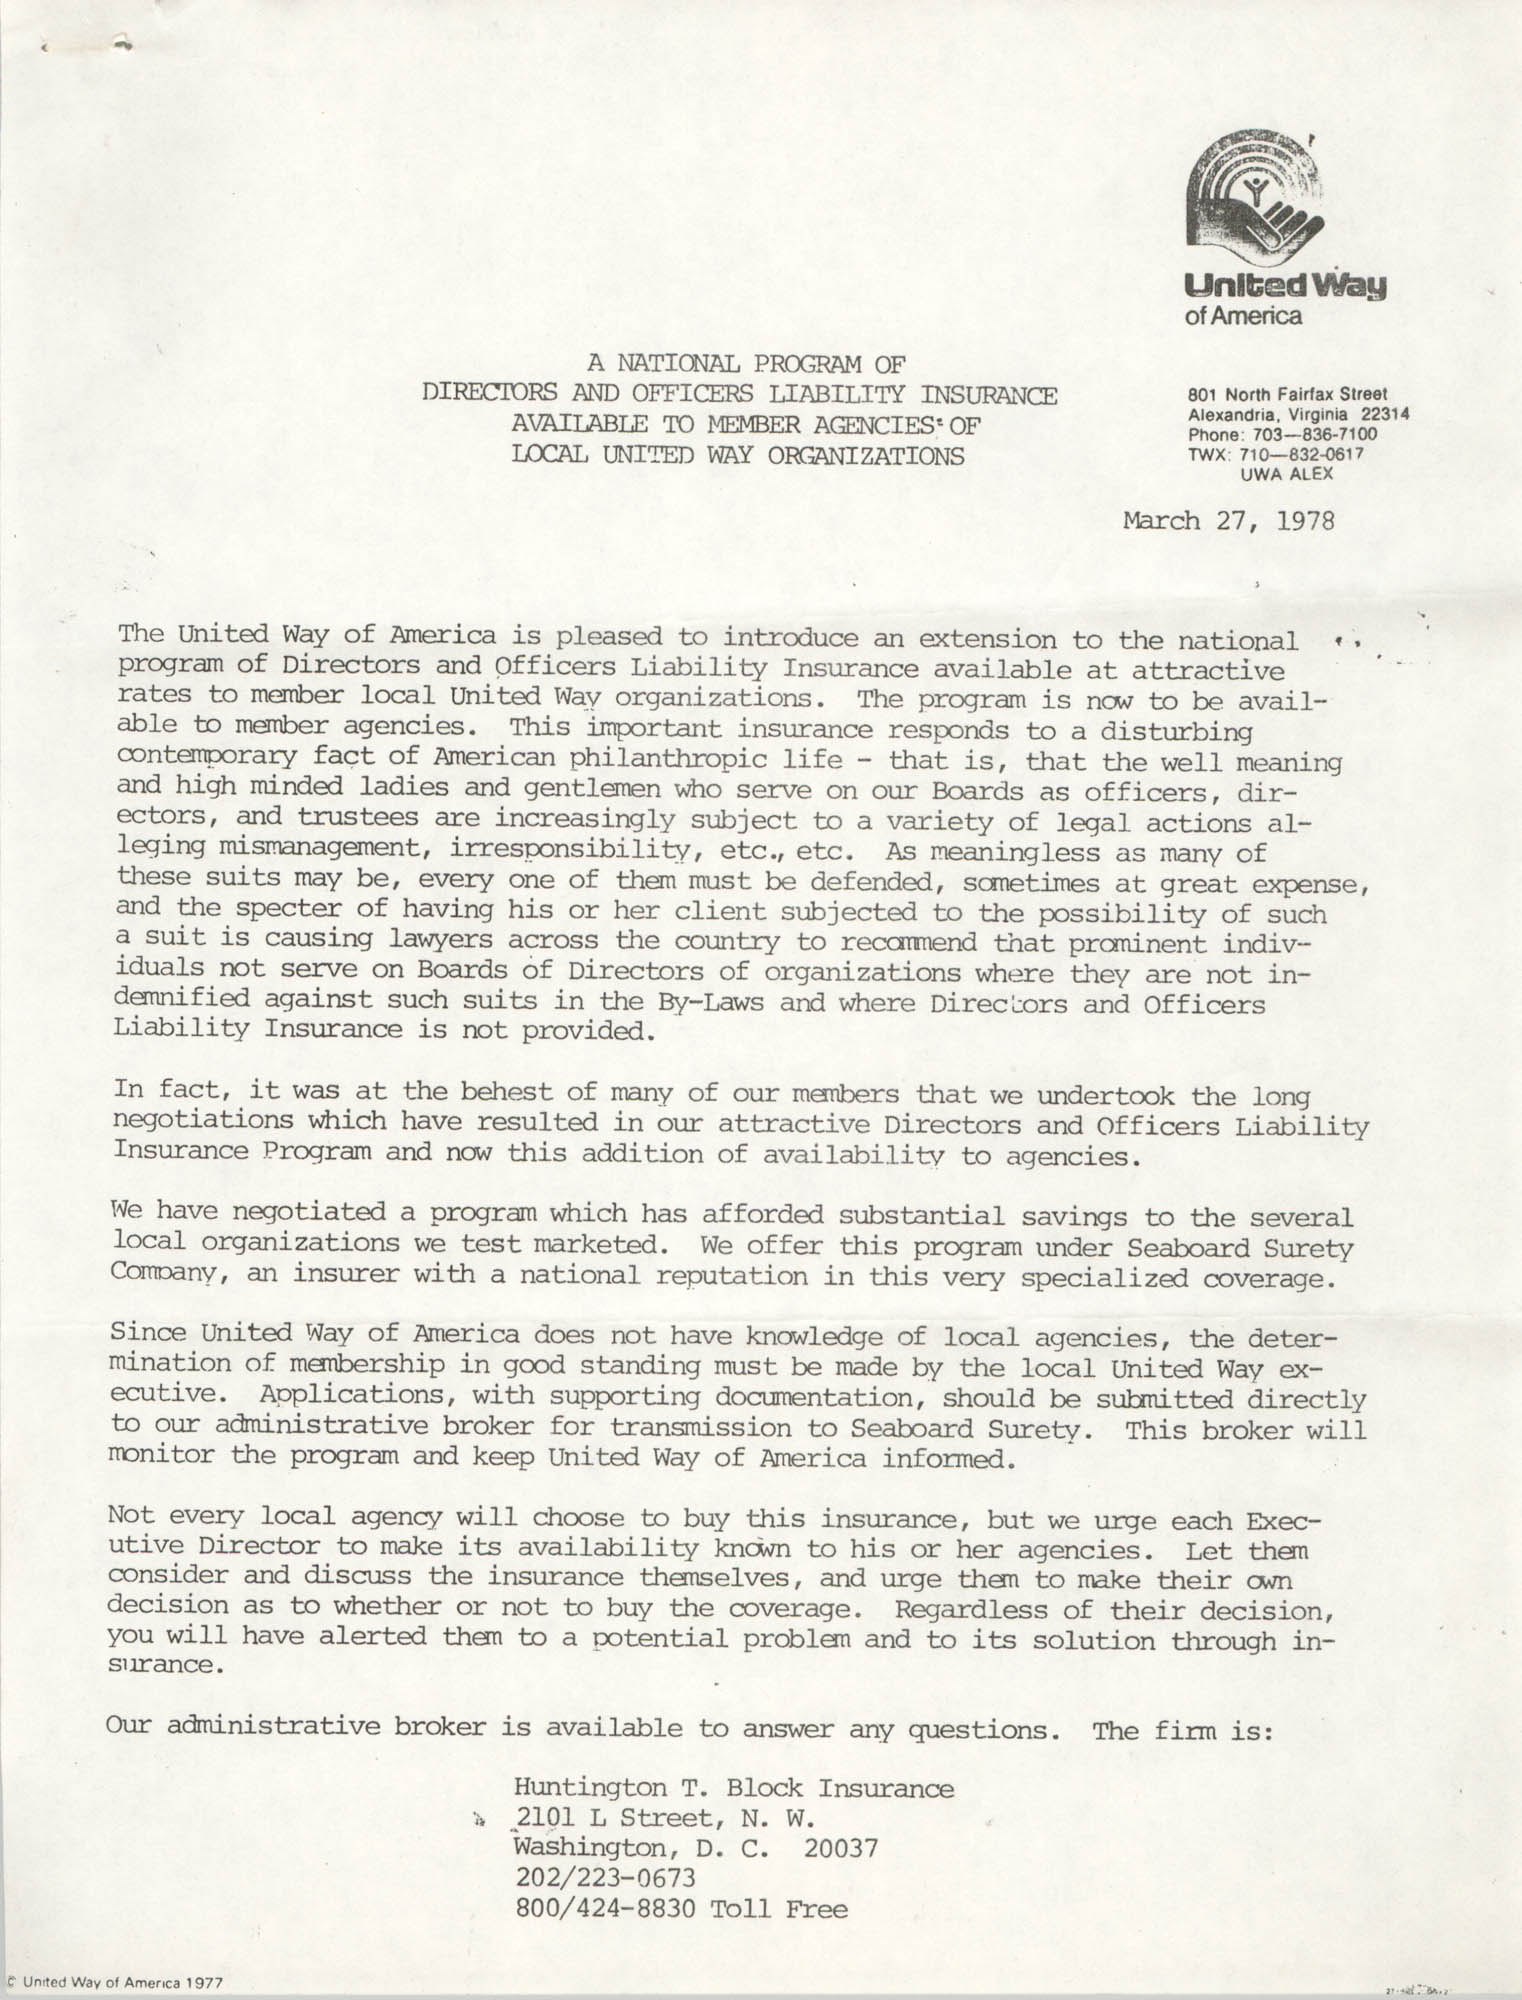 Legal Liability Insurance Cover Letter, March 27, 1978